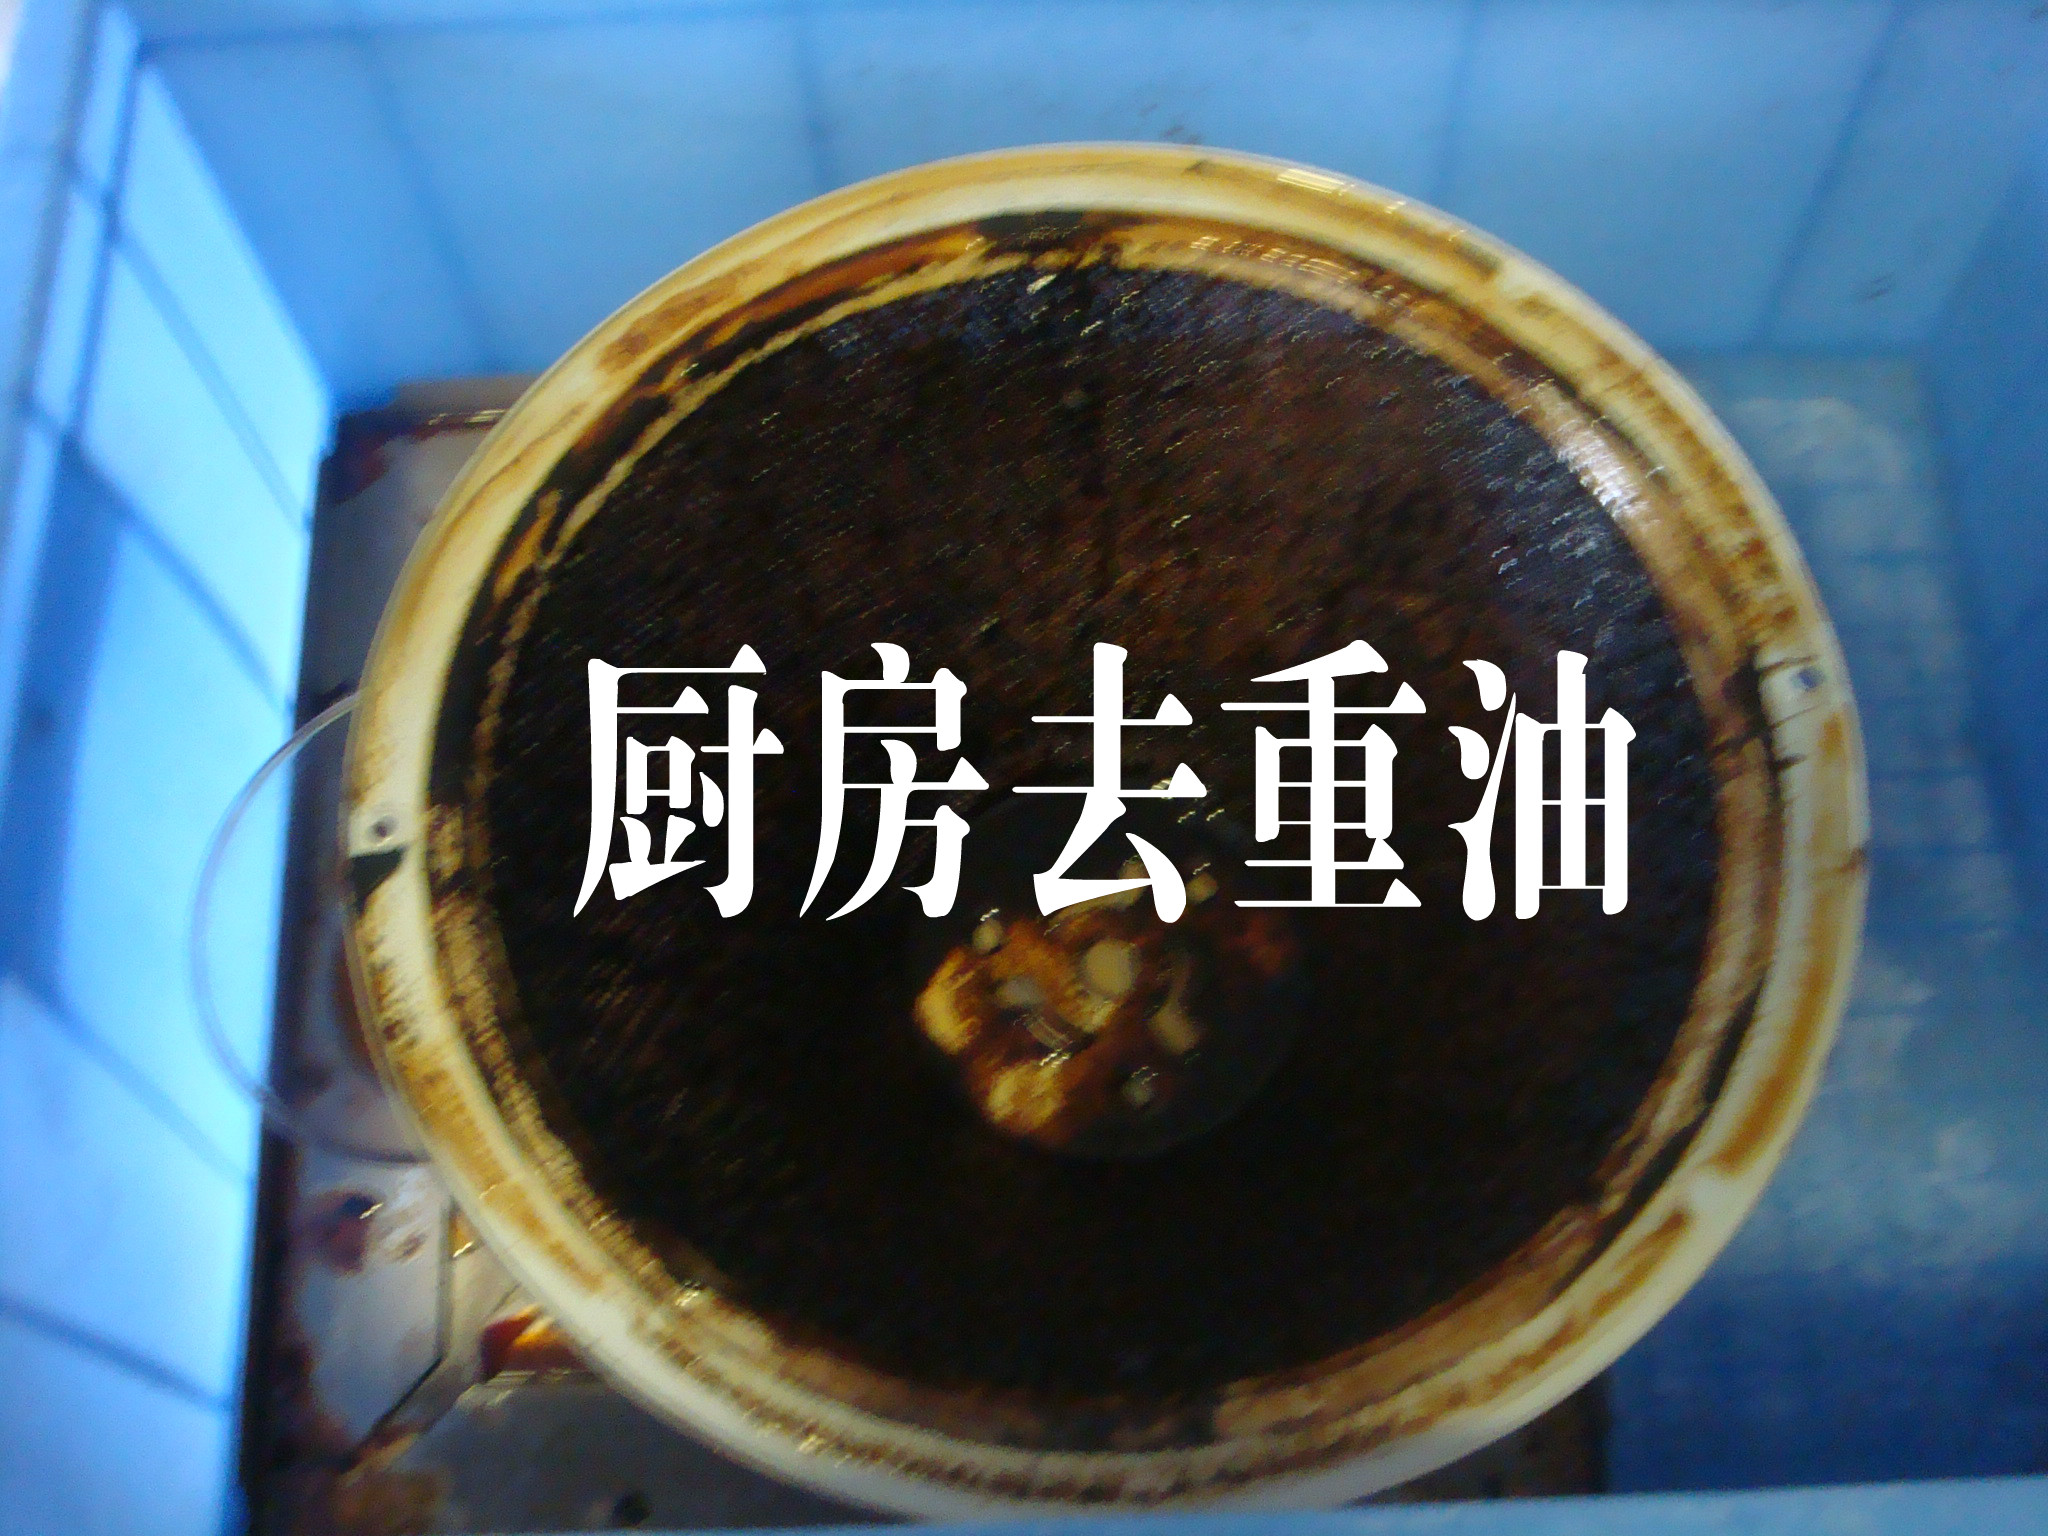 Wufen oil pollution cleaning kitchen cleaner range hood cleaning powerful heavy oil super concentrated granulated oil super powerful